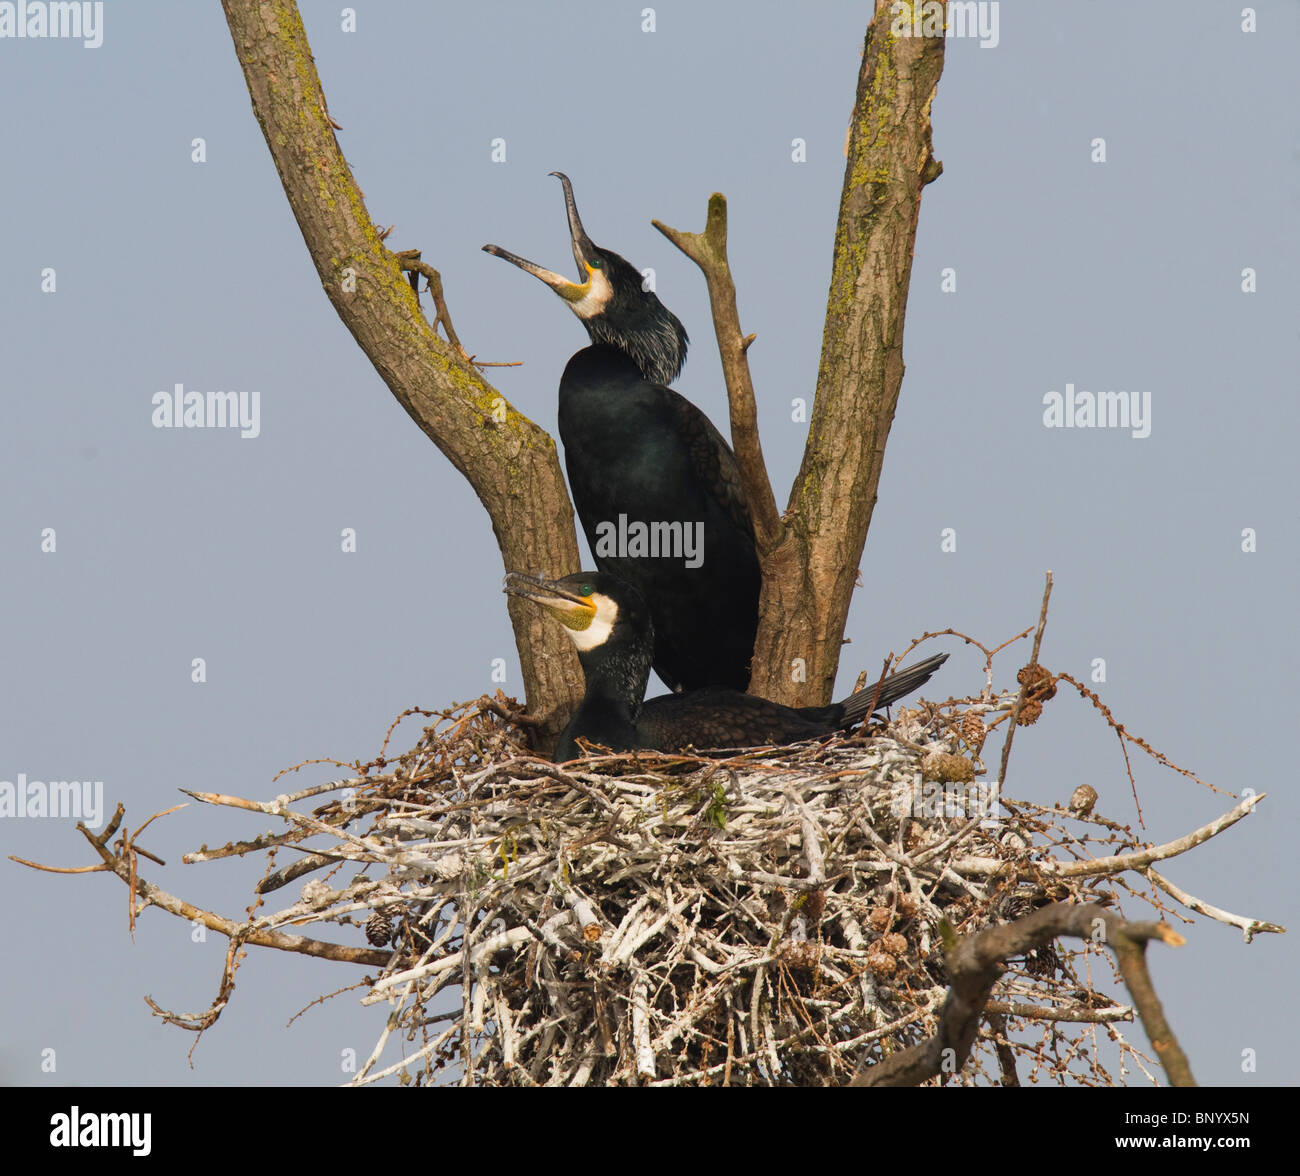 Male Great Cormorant (Phalacrocorax carbo) displaying to female on their nest in a tree - Stock Image